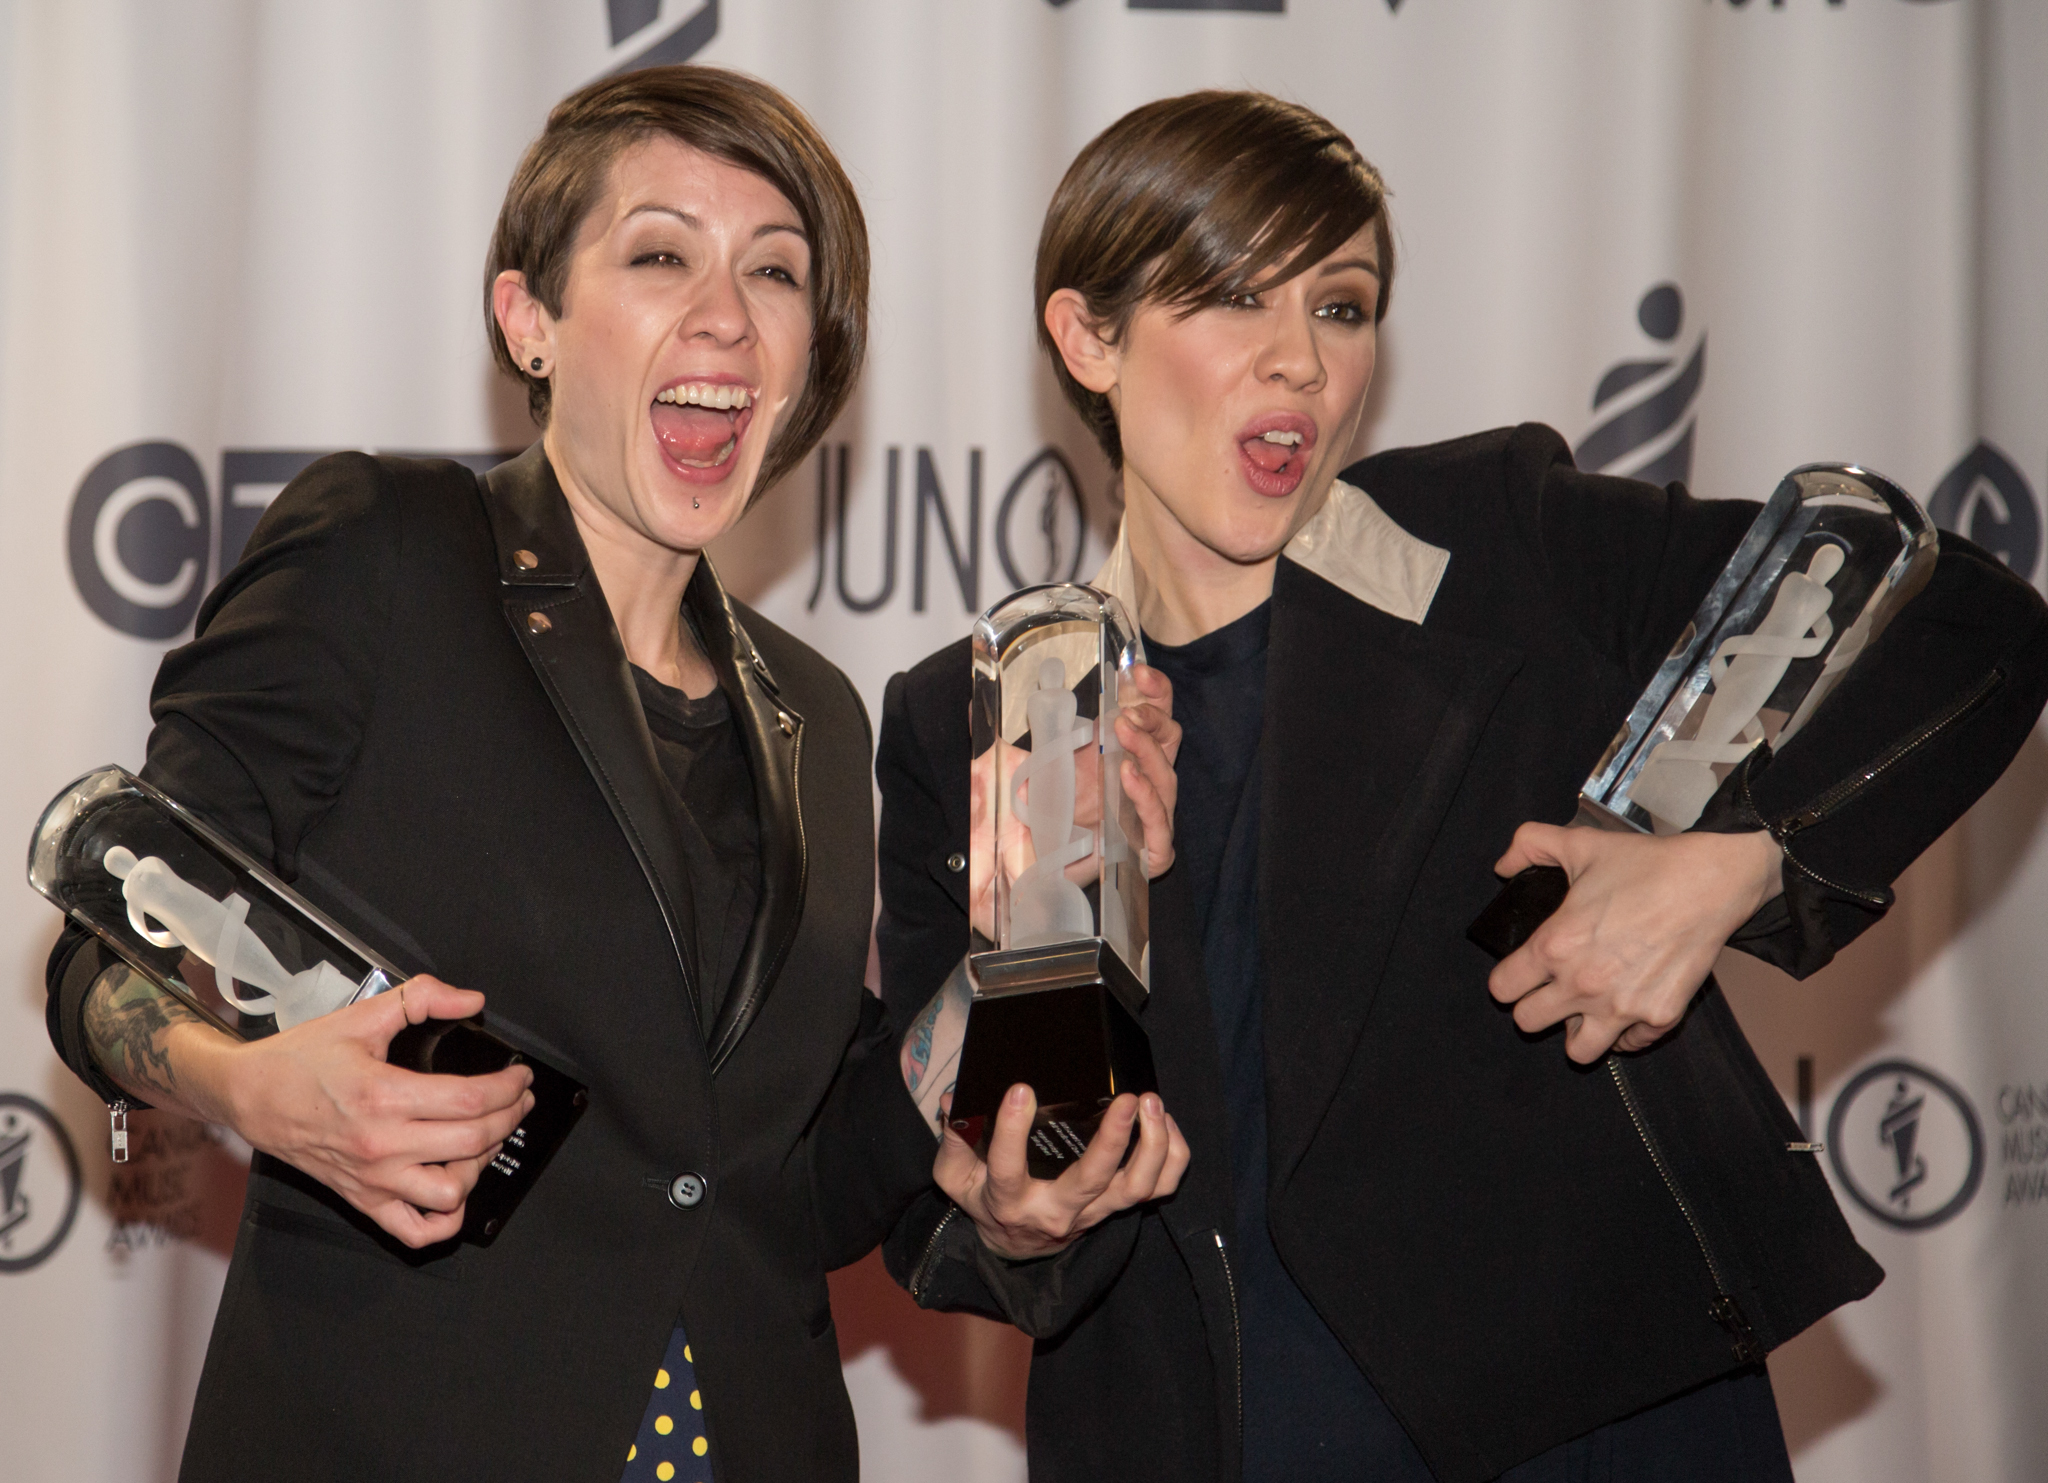 Tegan and Sara receive three 2014 JUNOs at the at the MTS Centre in Winnipeg on Sunday, March 30, 2014. They won for Single of the Year, Group of the Year and Pop Album of the Year.